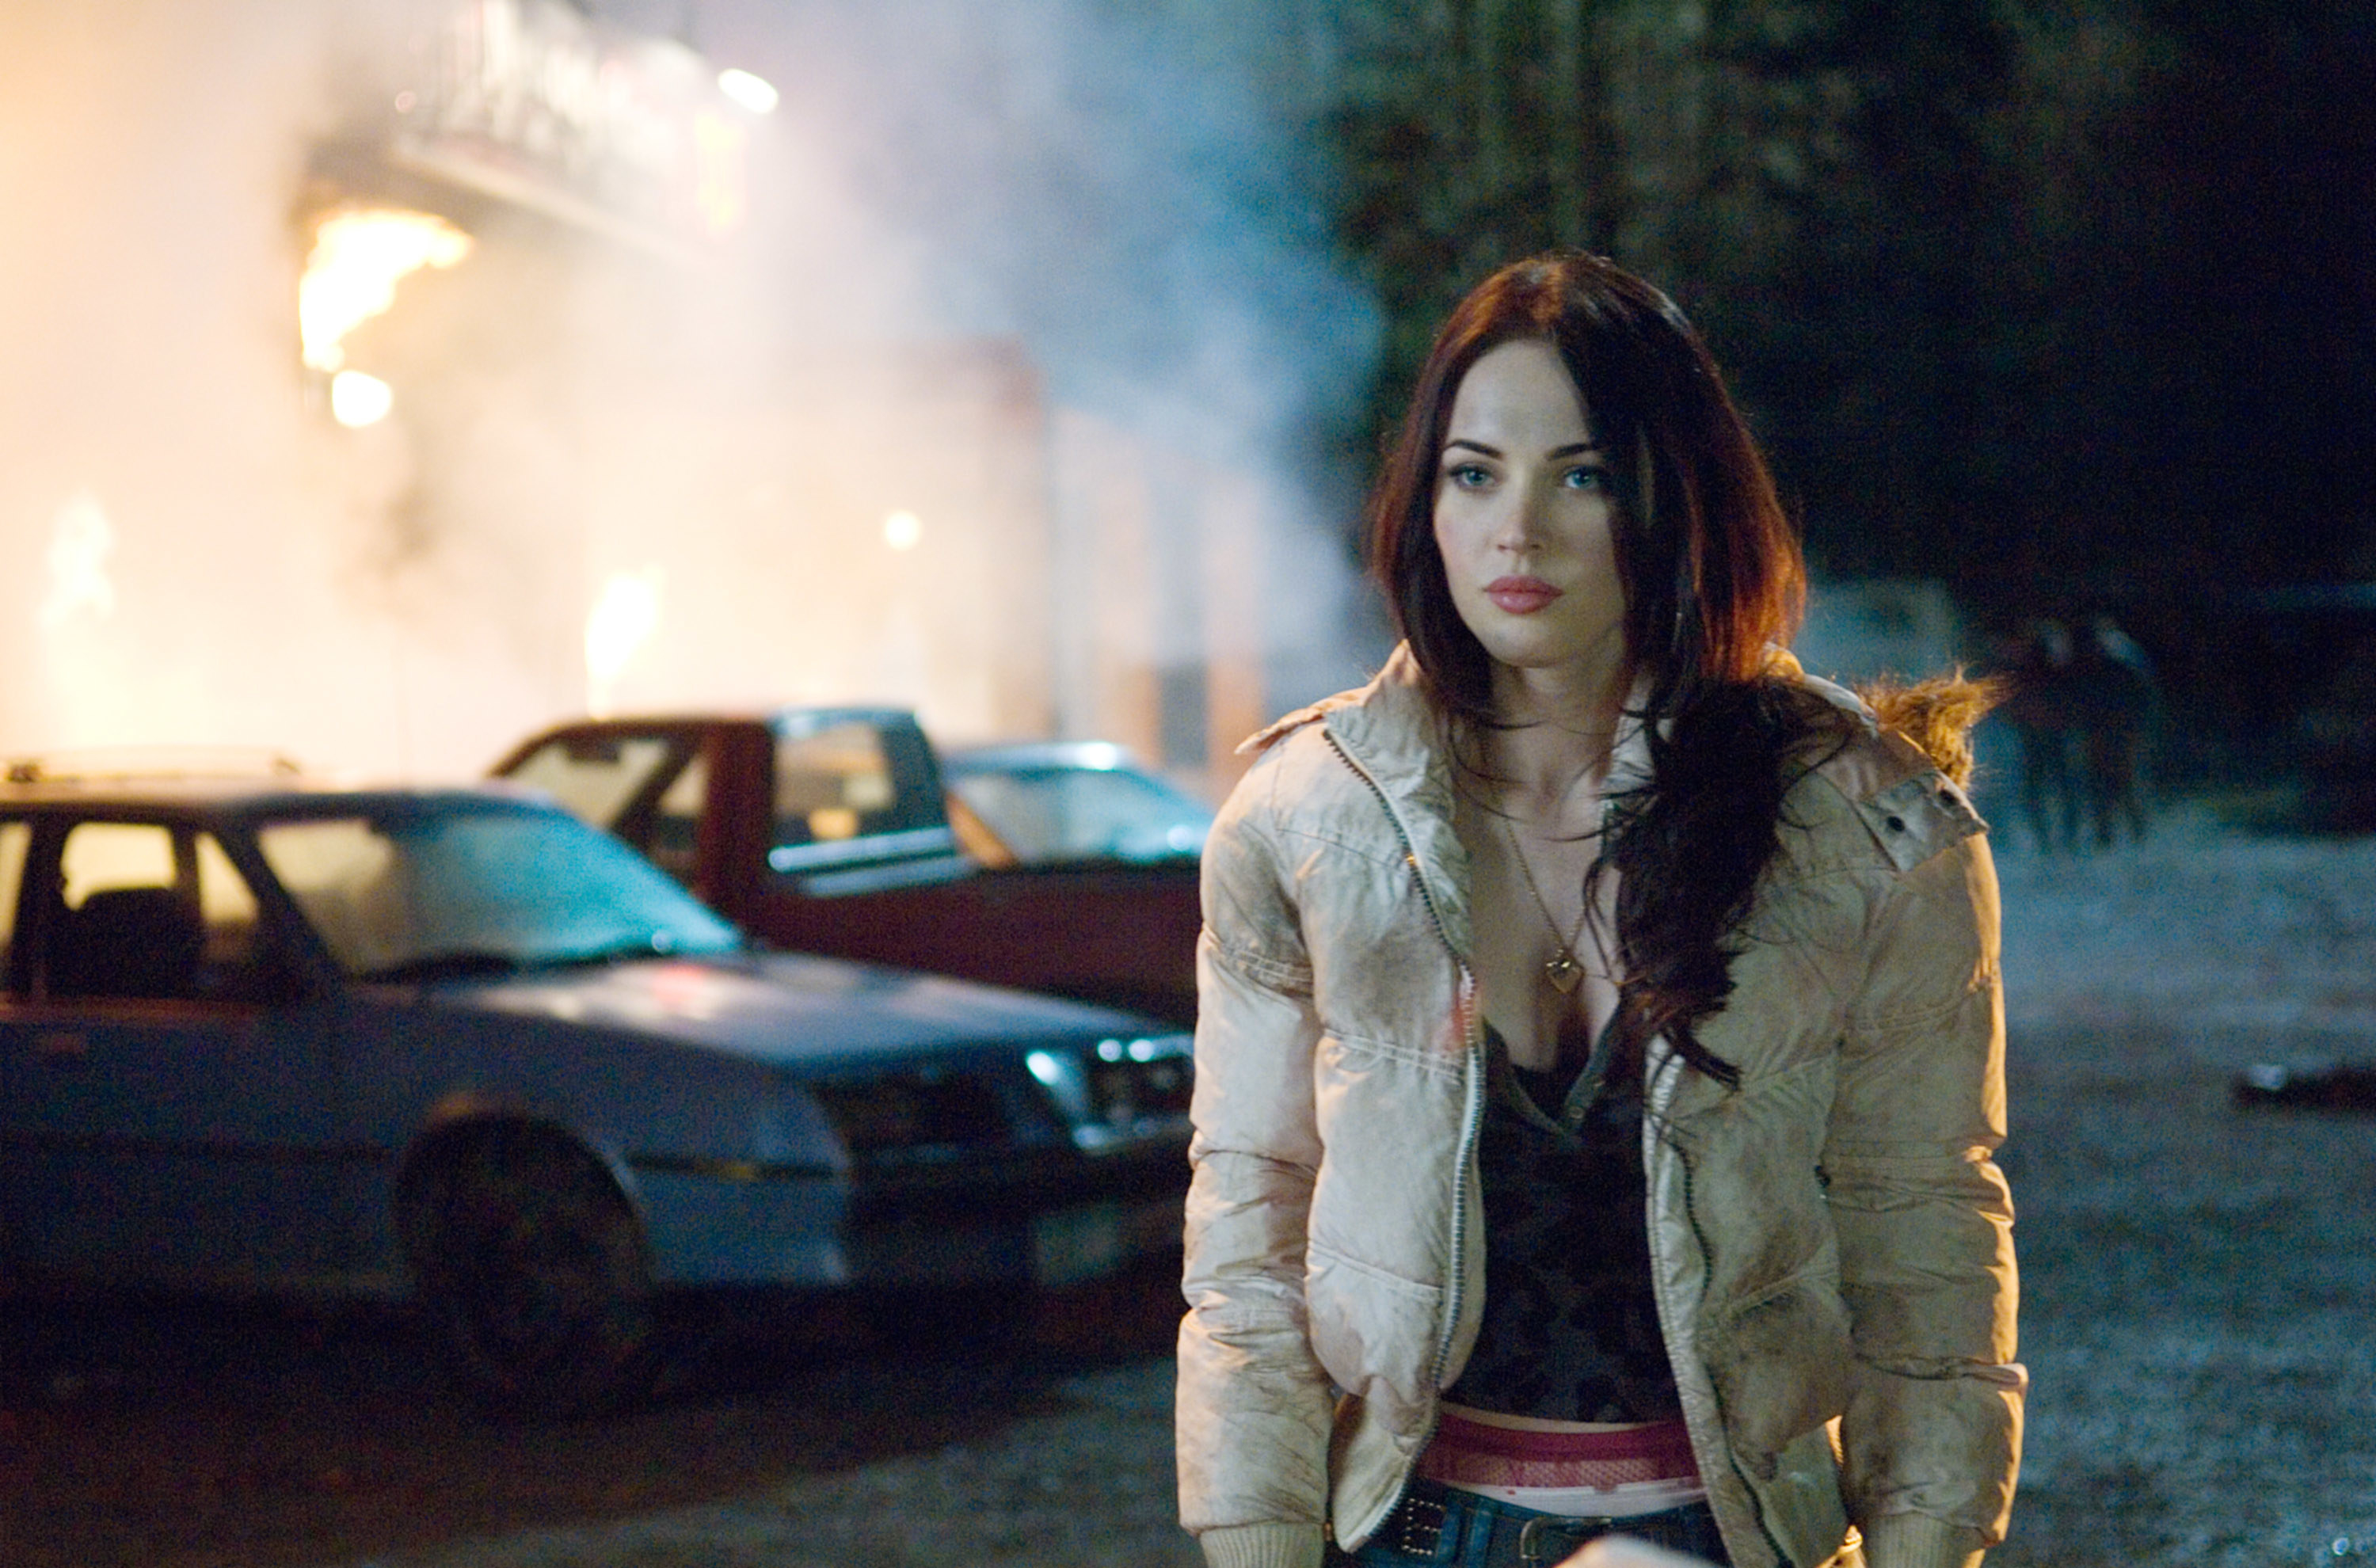 Megan Fox stands in front of a burning building